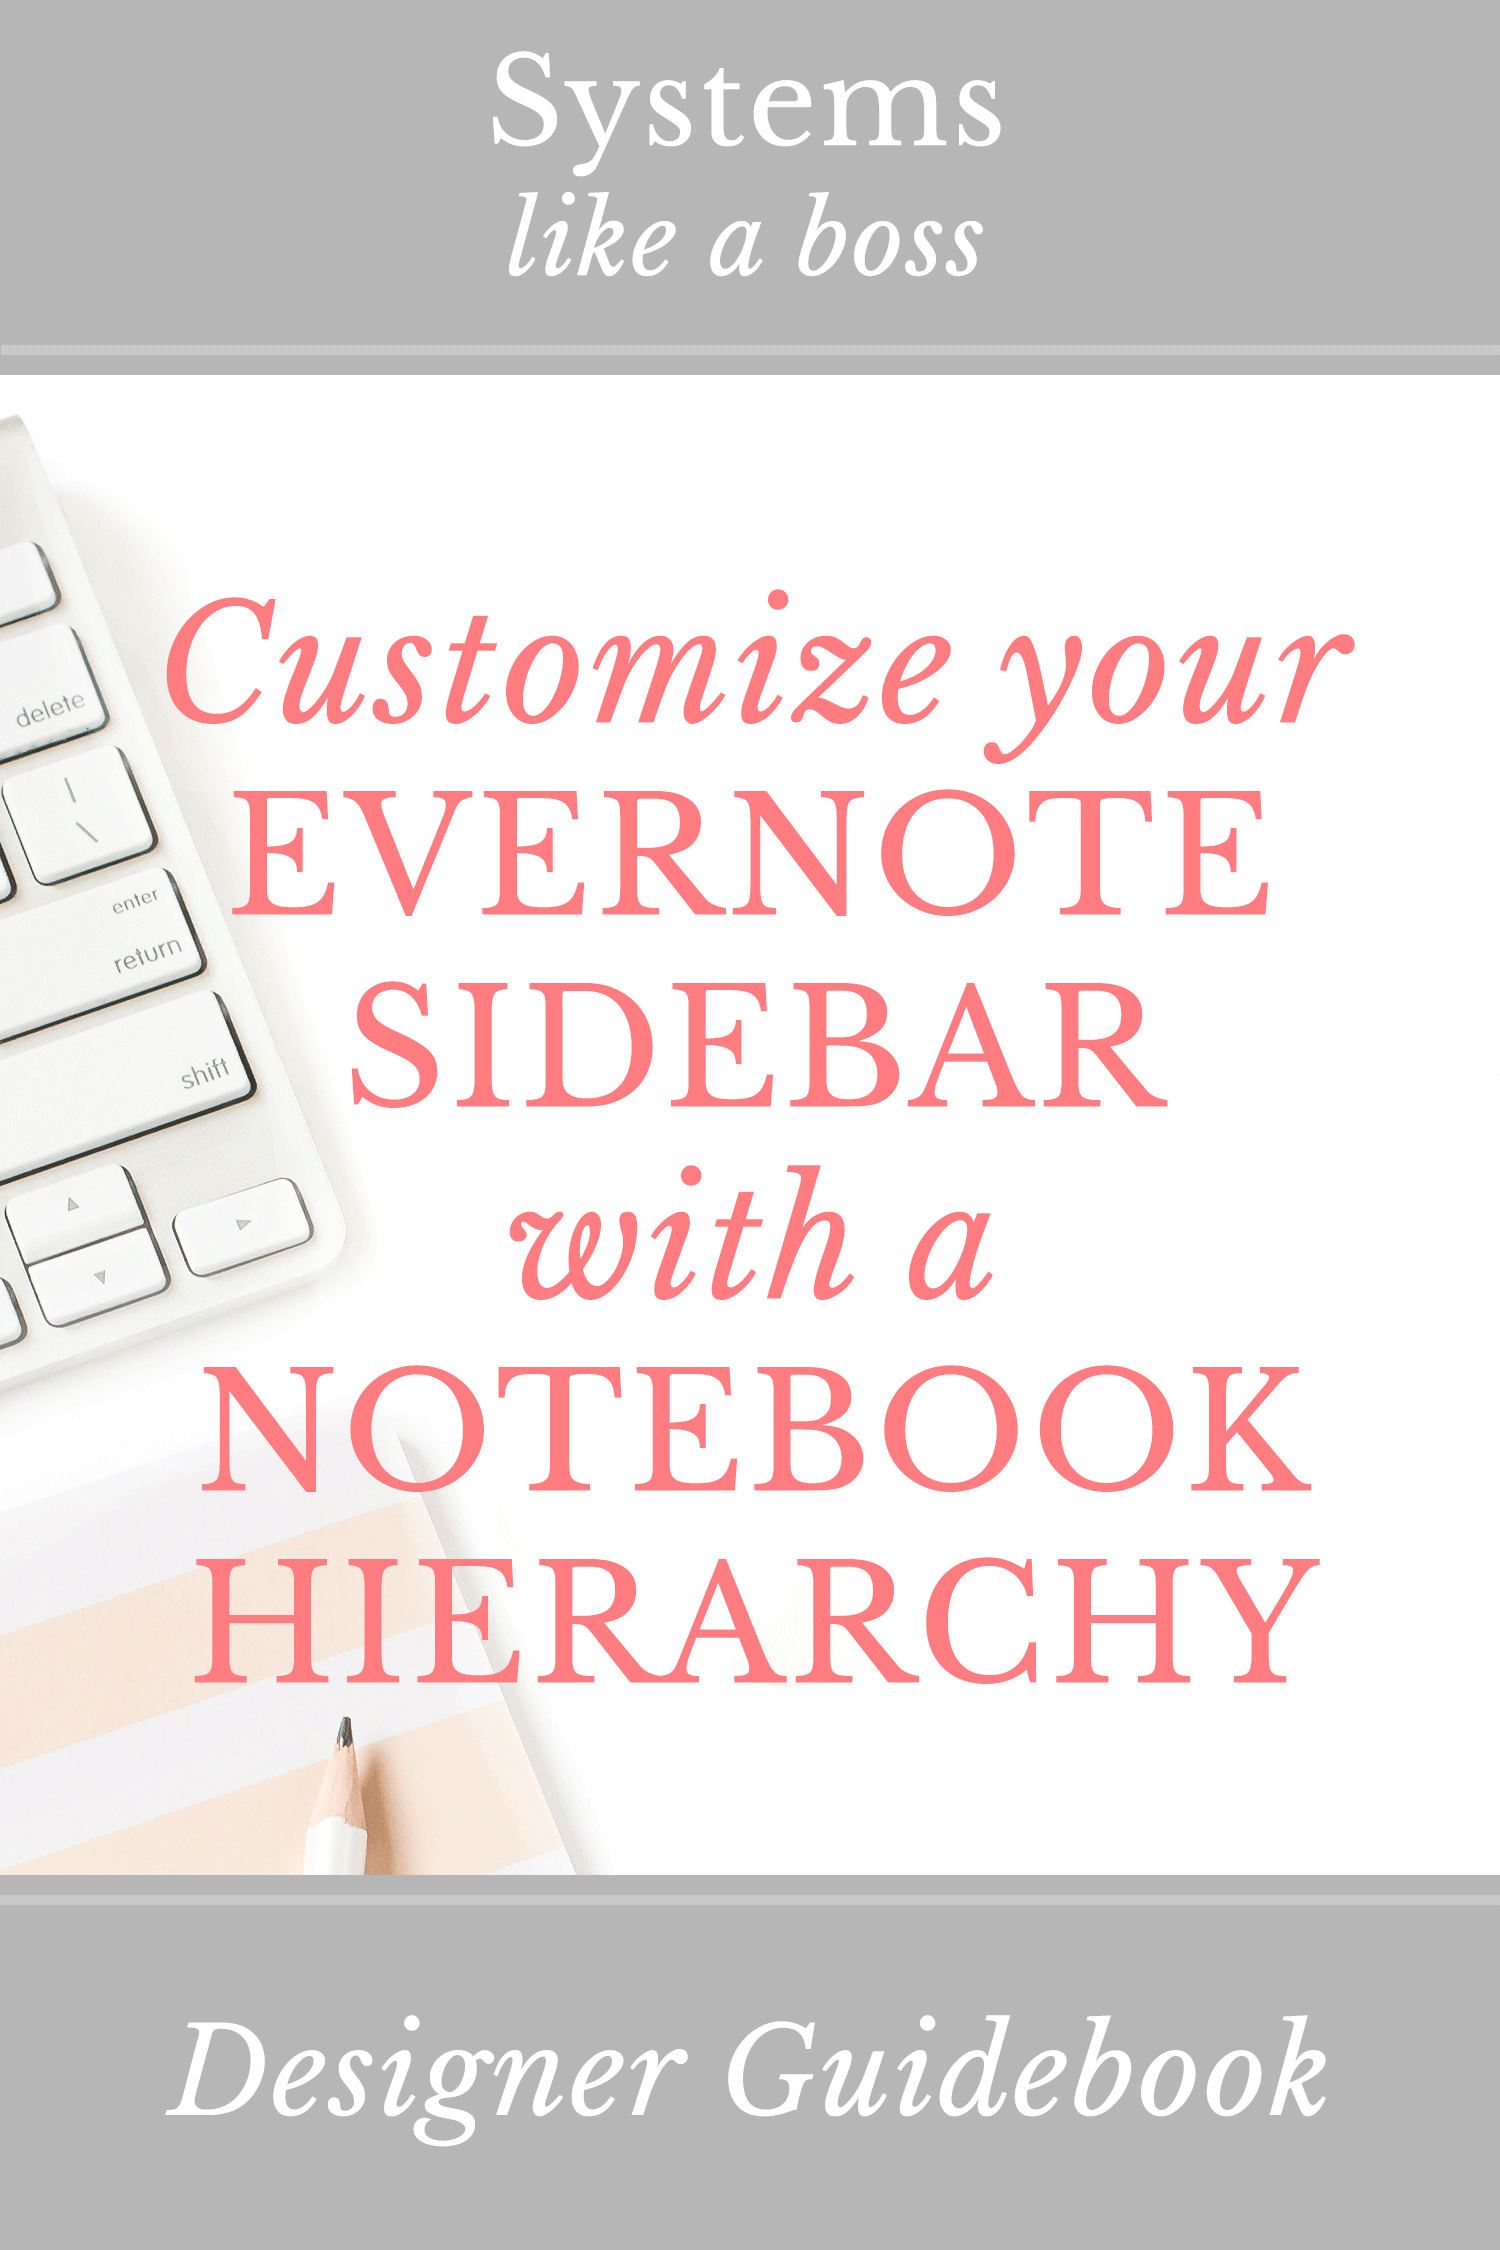 Customize Your Evernote Sidebar with a Notebook Hierarchy